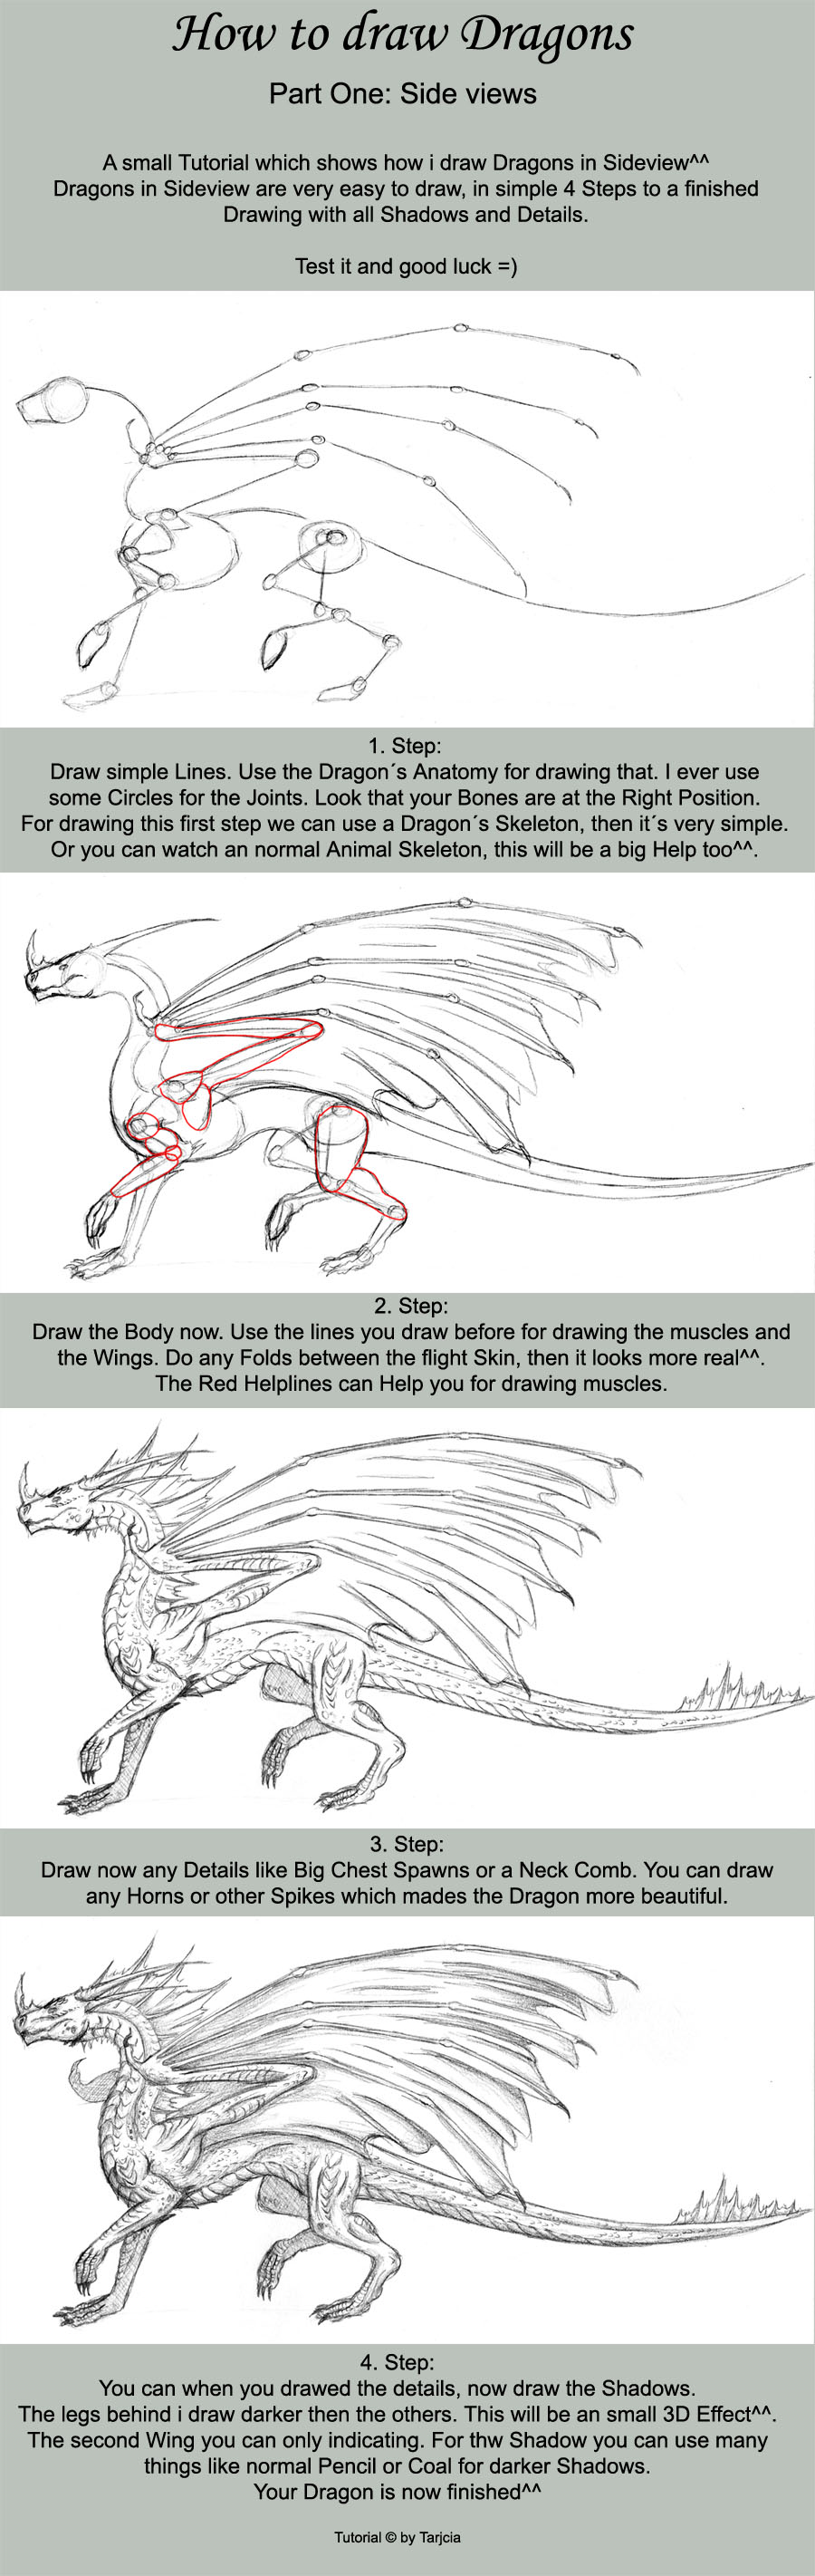 How to draw Dragons Part One